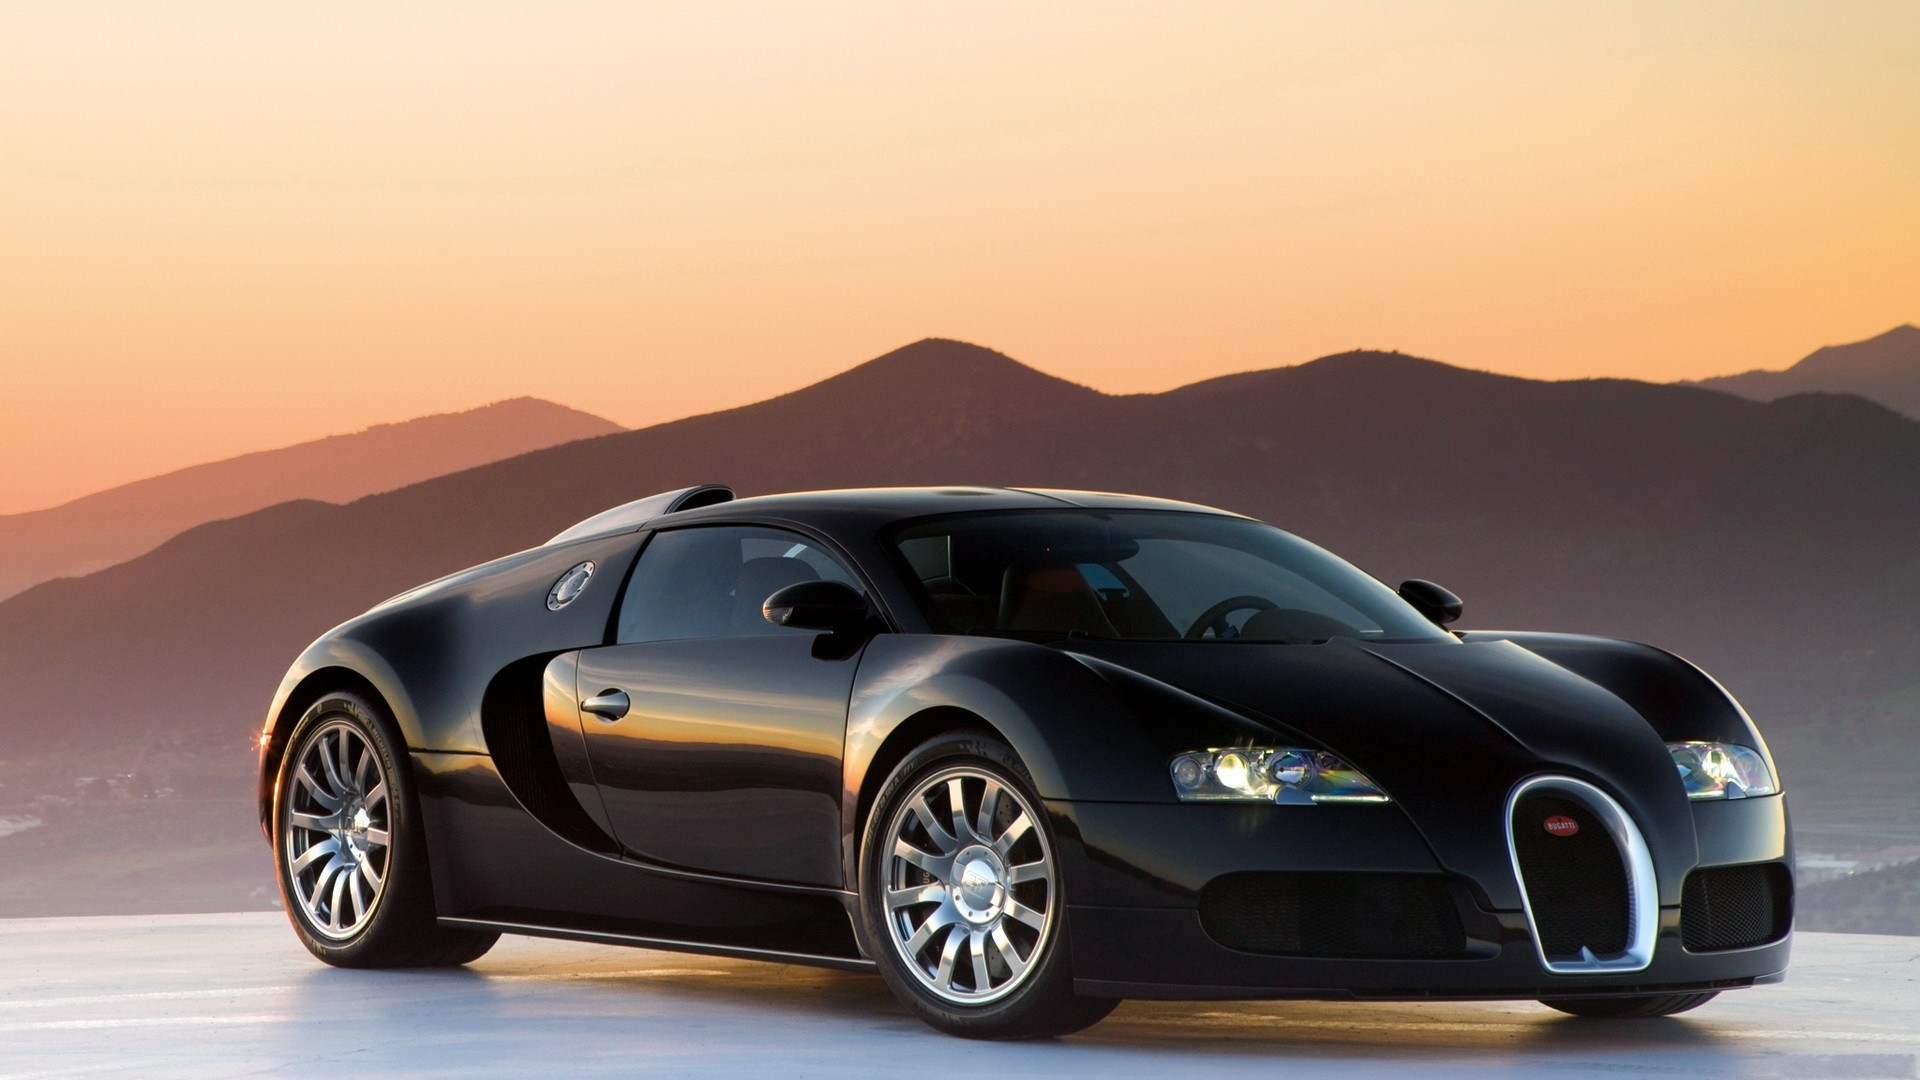 Bugatti Veyron Wallpaper Backgrounds